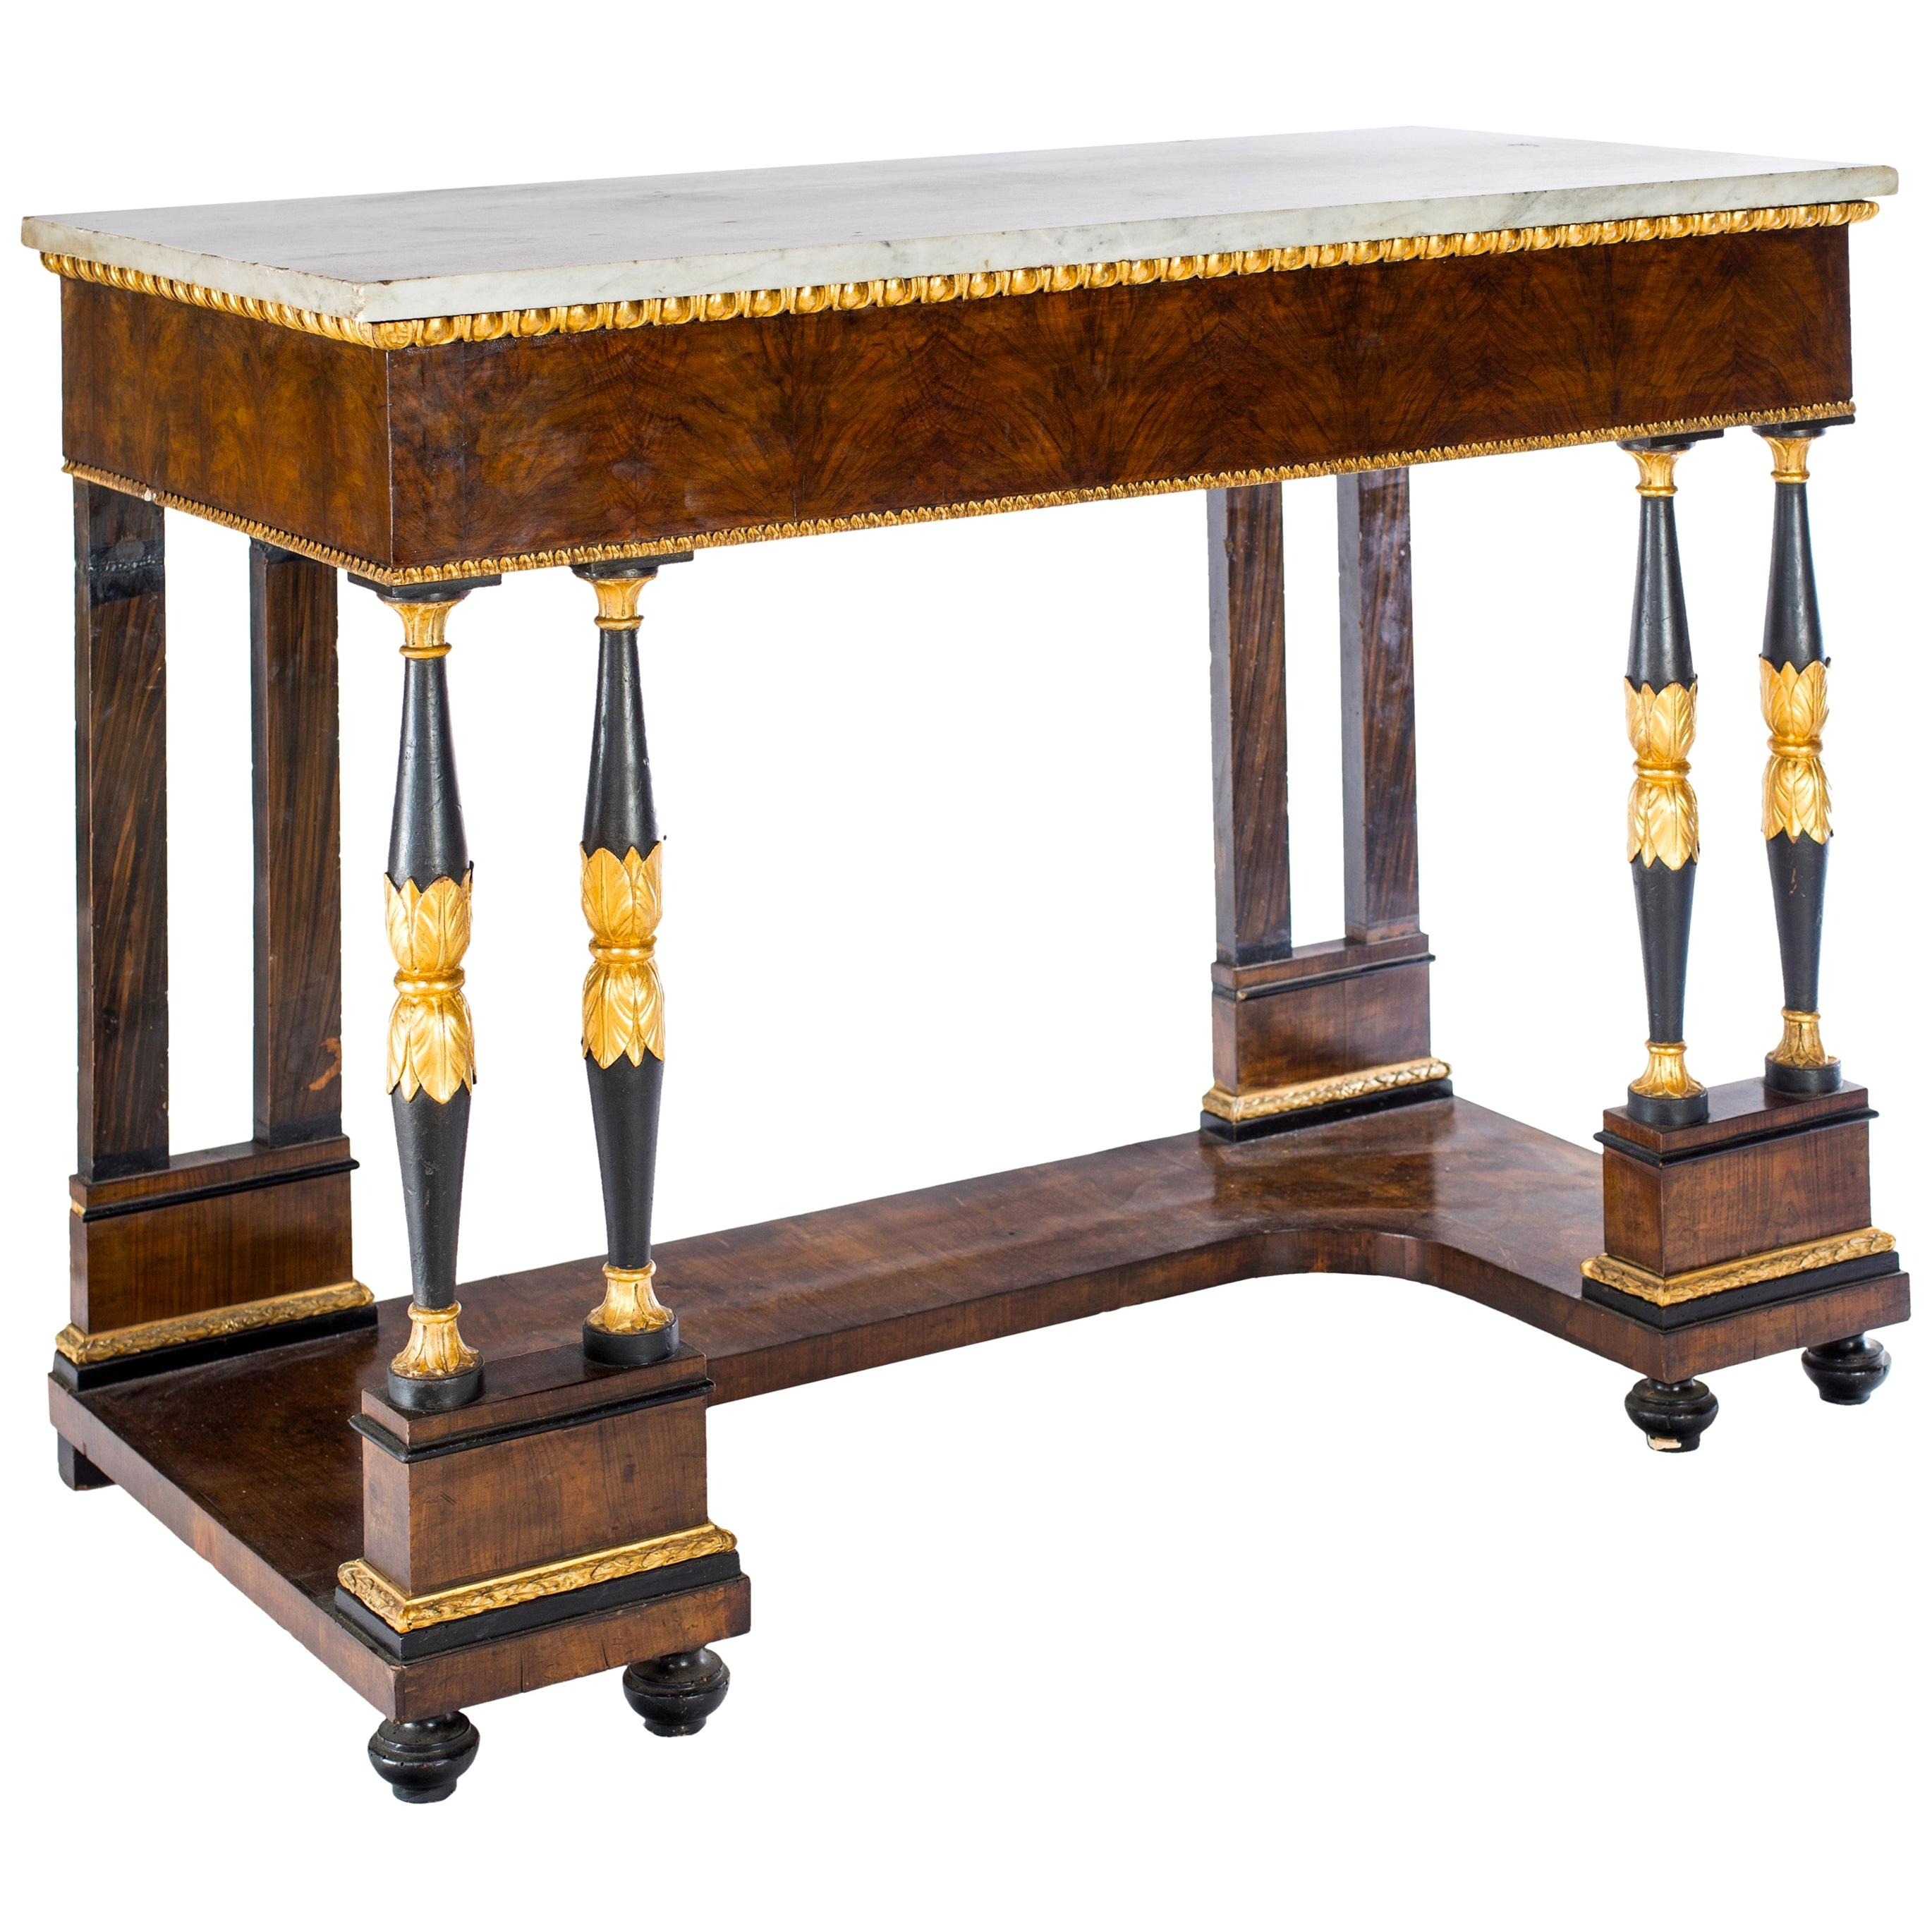 Elegant Italian Empire Consoles Tables with White Marble Top, 1815